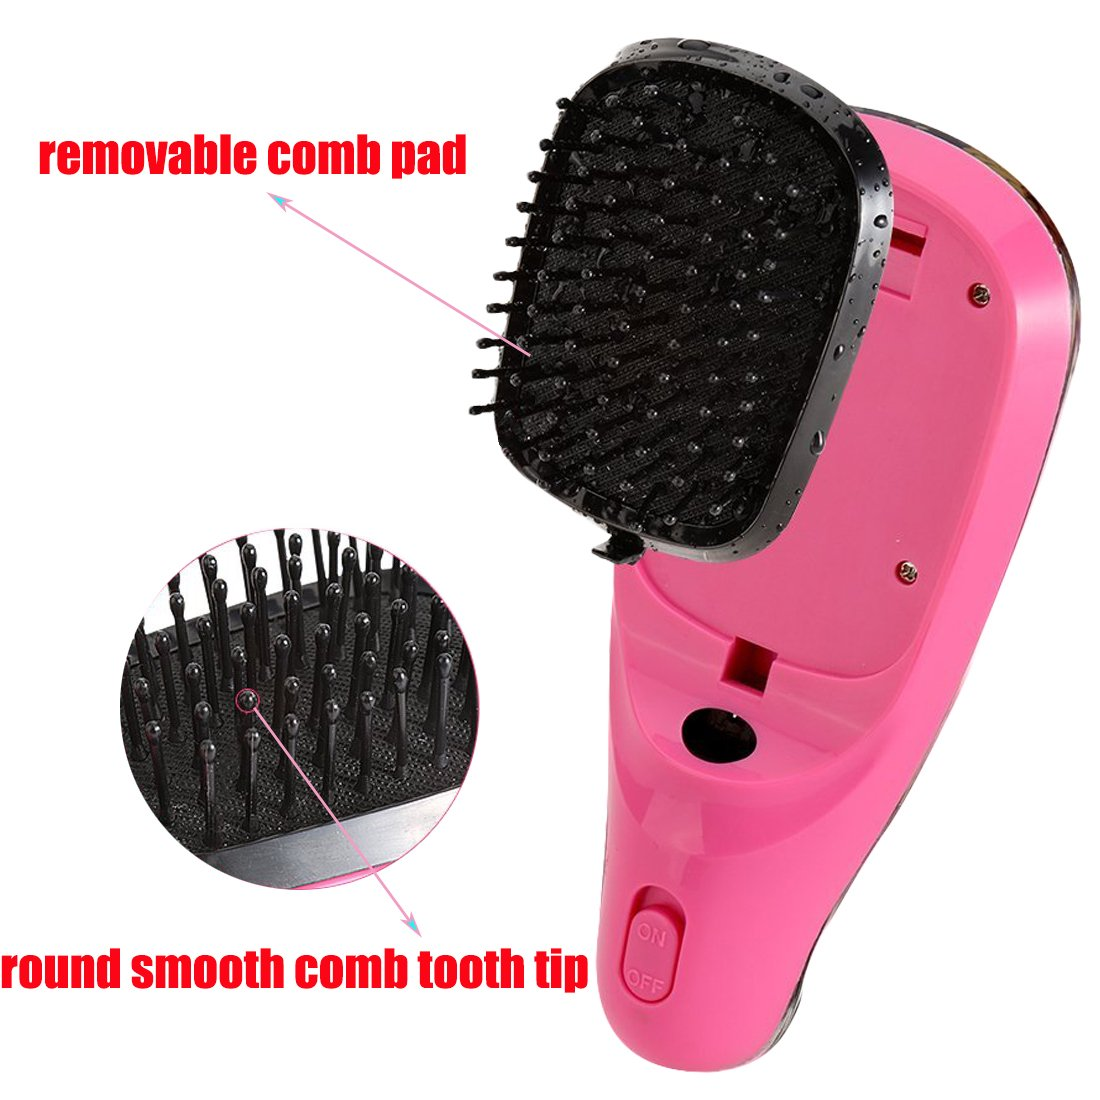 Lookathot Mini Portable Hair Straightener Brush Detangling USB Rechargeable Hair Styling Comb Anion Hair Massager Travel Light Weight (Black) by Lookathot (Image #4)